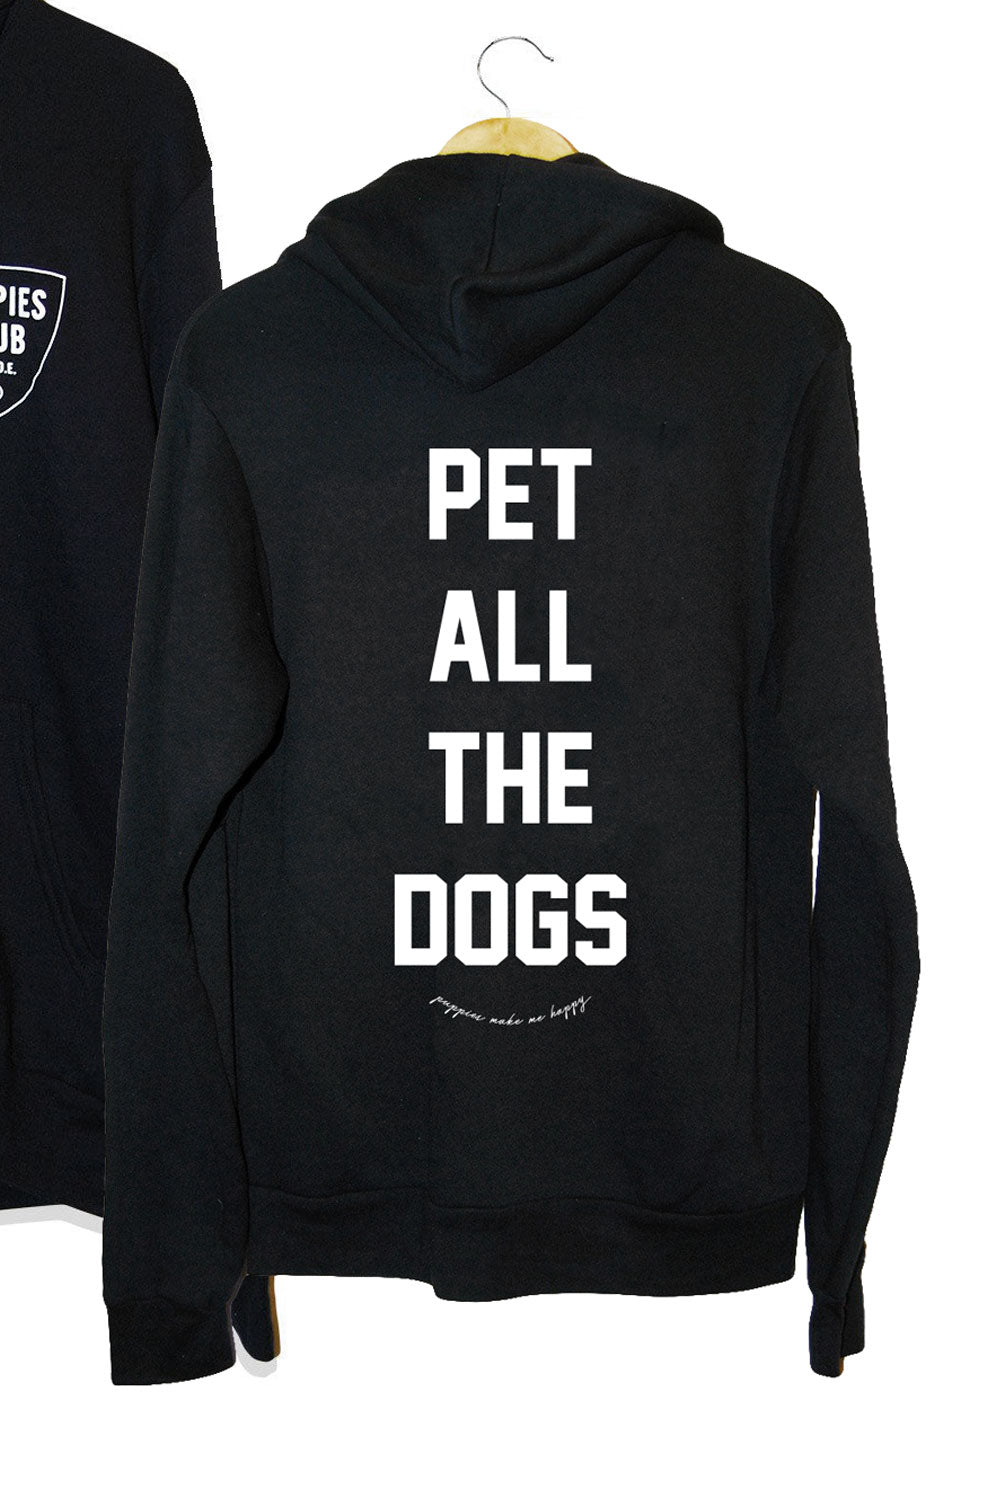 Pet All The Dogs Club Zip Hoodie